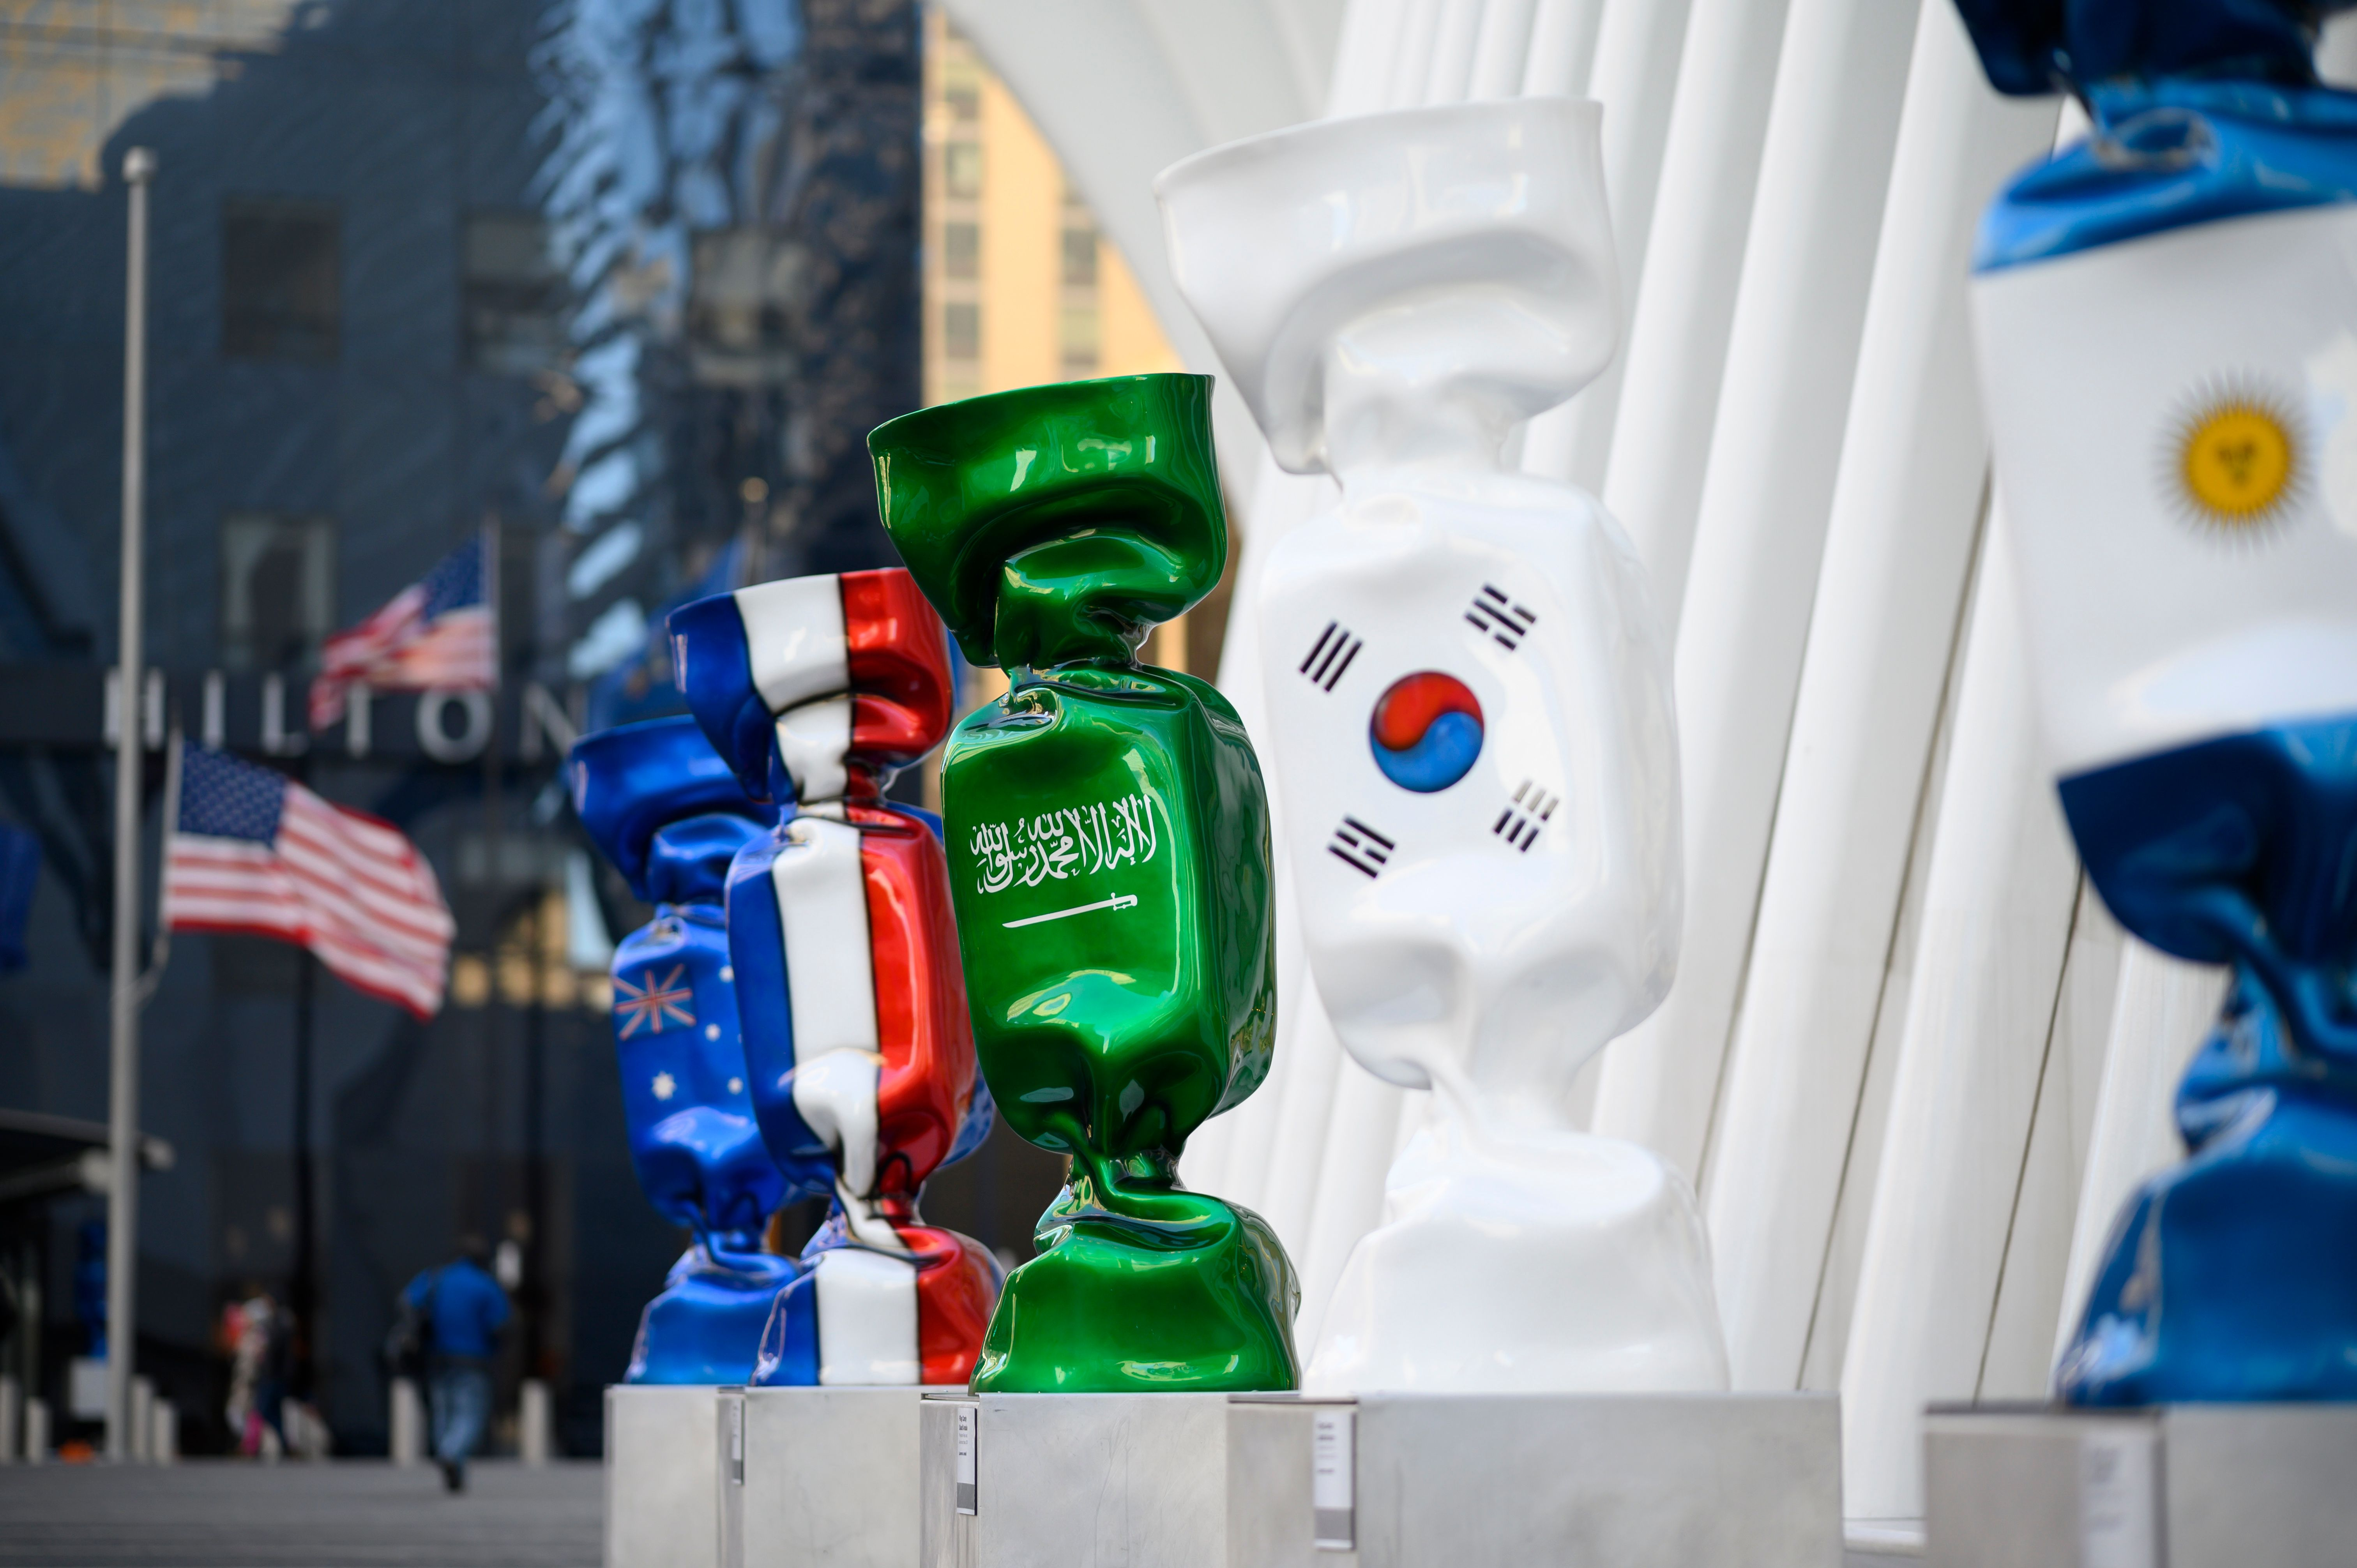 A sculpture with the flag of Saudi Arabia(3rdR), part of an exhibit called 'Candy Nations' is pictured outside next to the Oculus, one of the buildings that replaced the original World Trade Center on January 14, 2019 in New York City. - Candy Nations depicting the flags of each of the G20 countries as 9-foot-tall wrapped confections, has drawn criticism for its placement outside 1 World Trade Center. (Photo by Johannes EISELE / AFP)